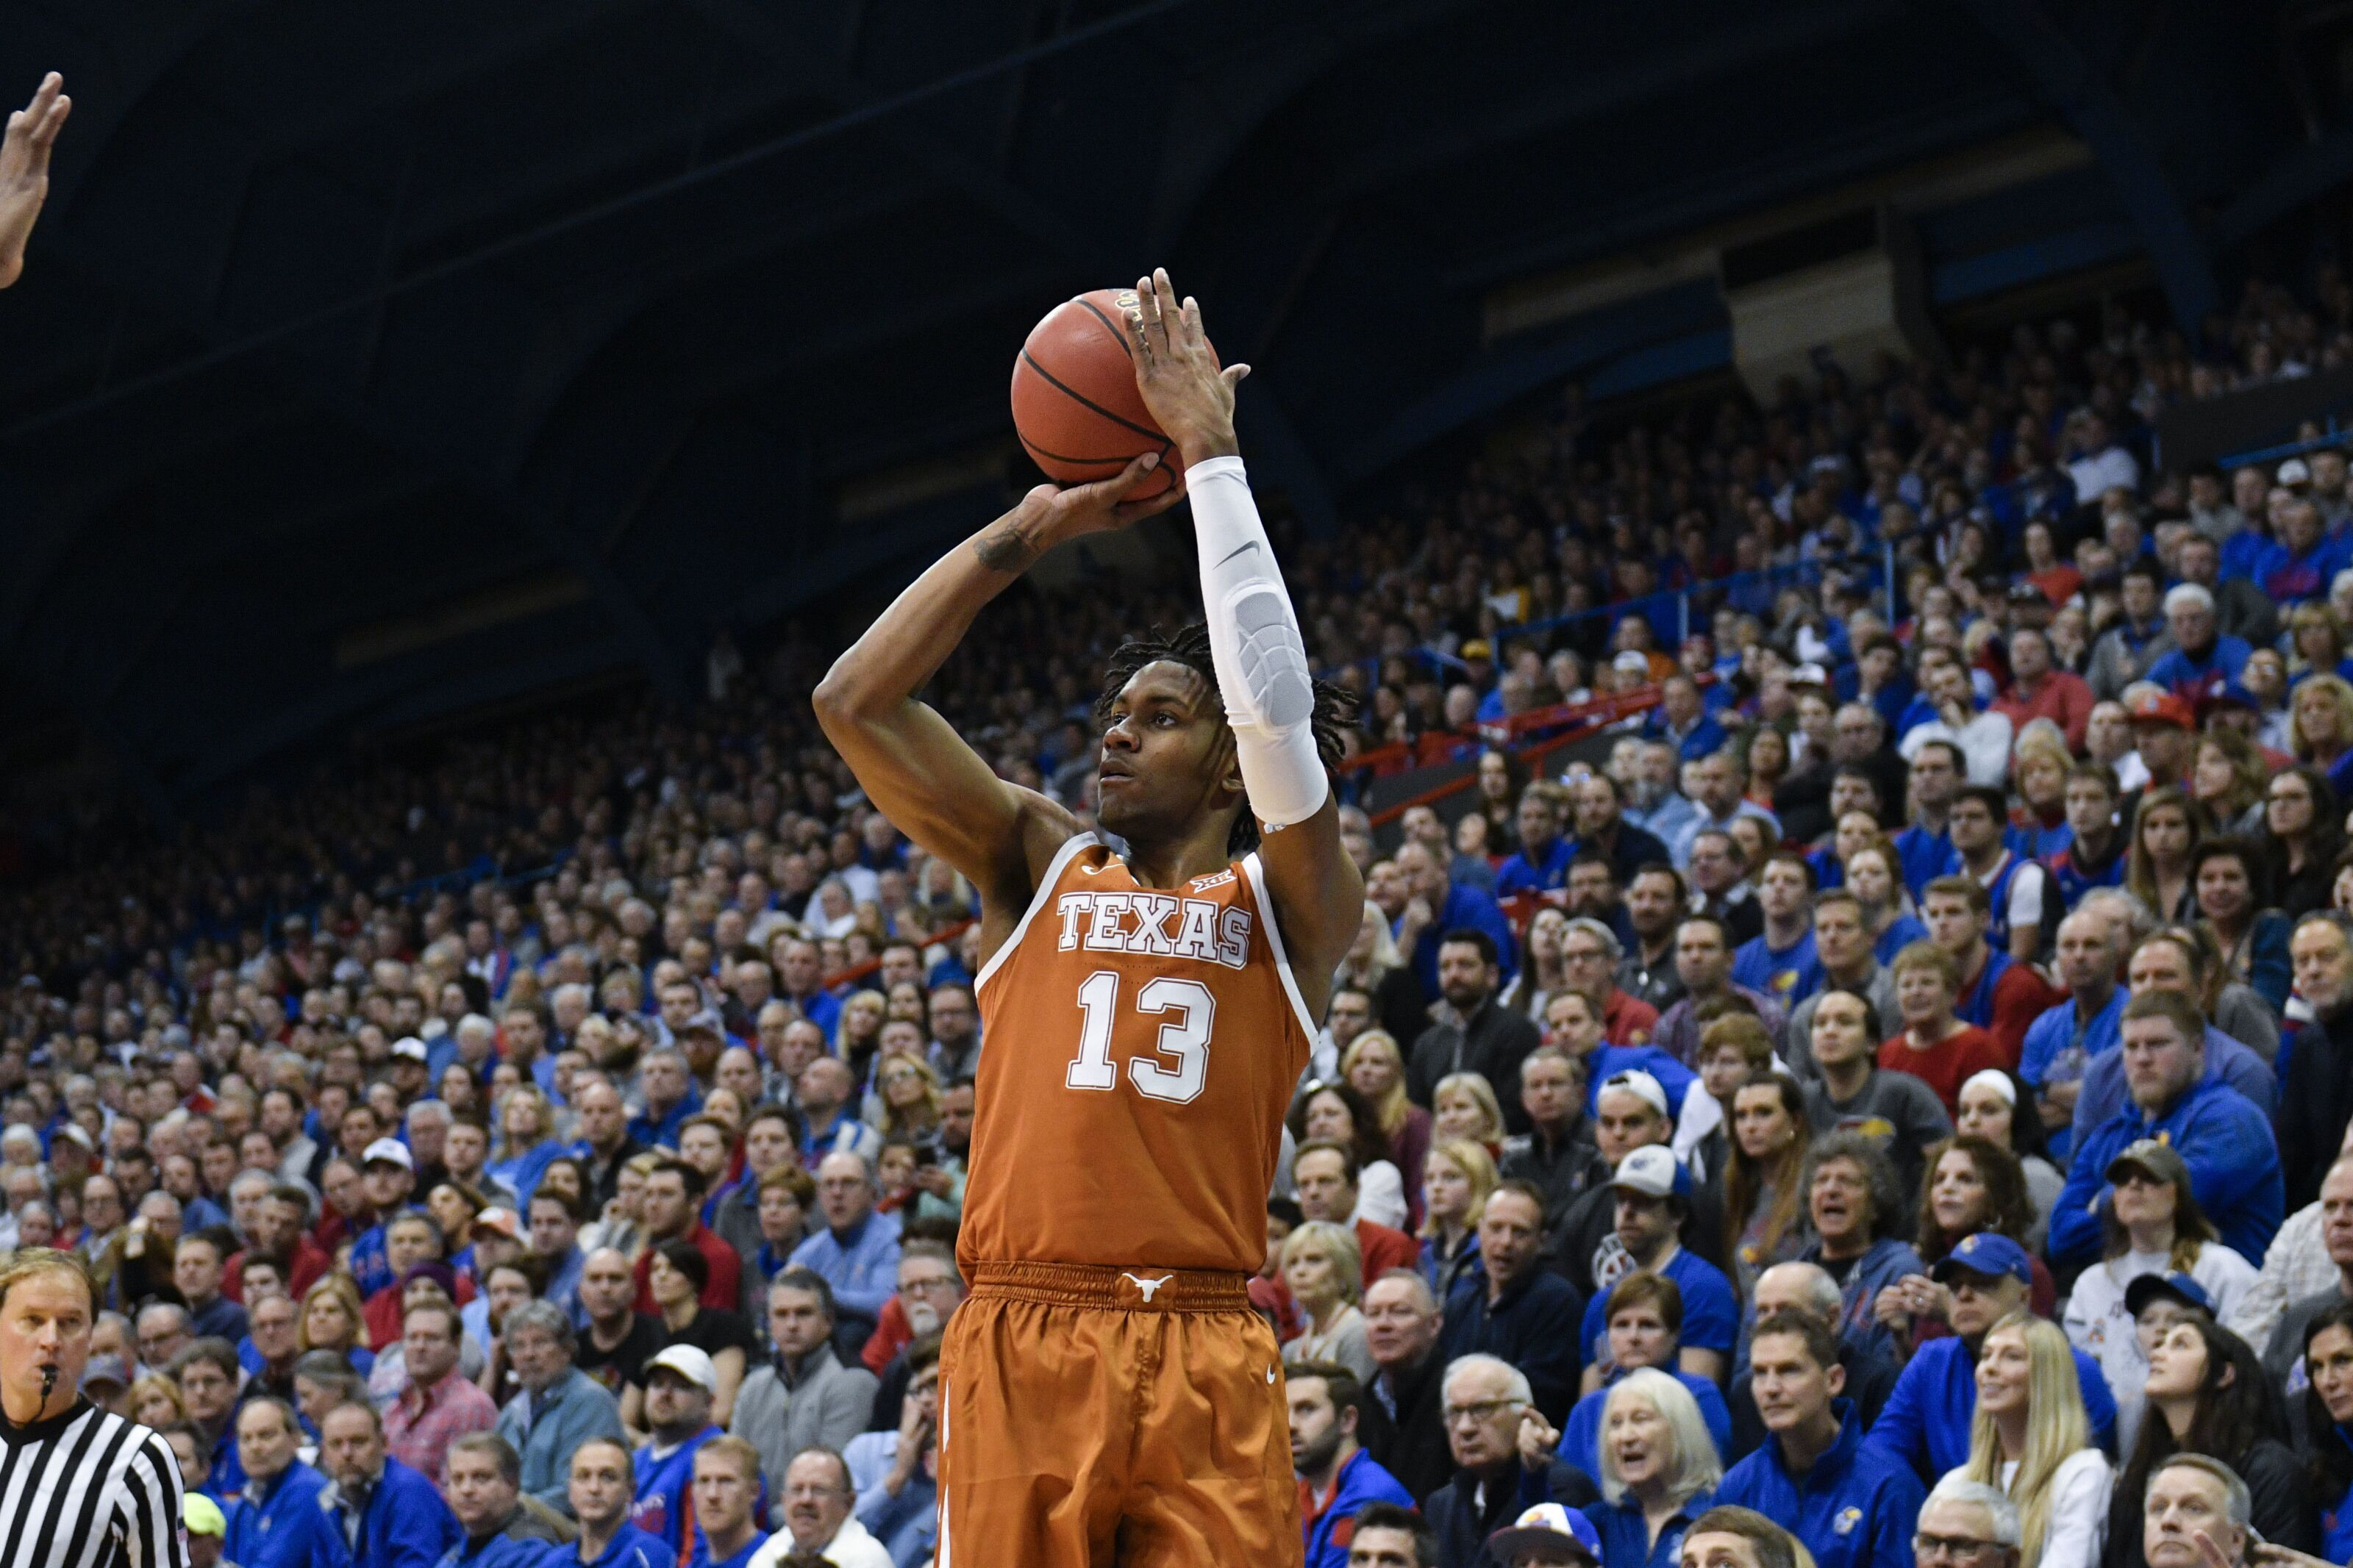 Texas Vs Oklahoma Live Stream Watch College Basketball Online